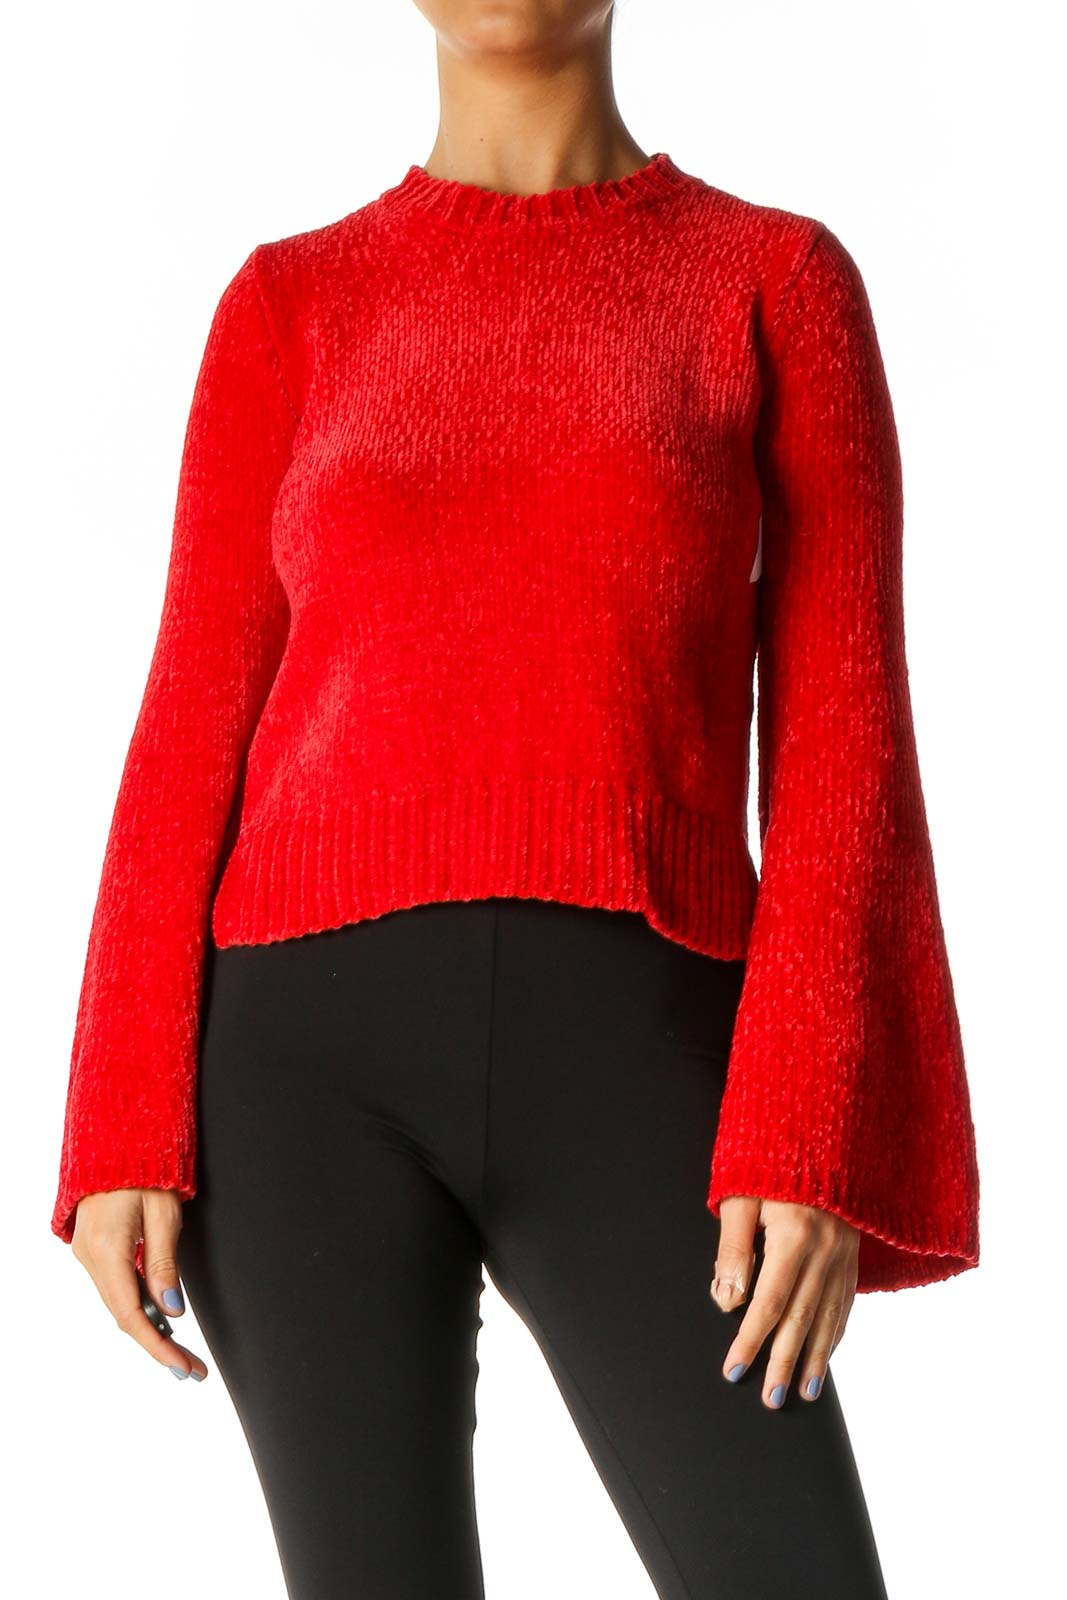 Red Textured Retro Sweater Front